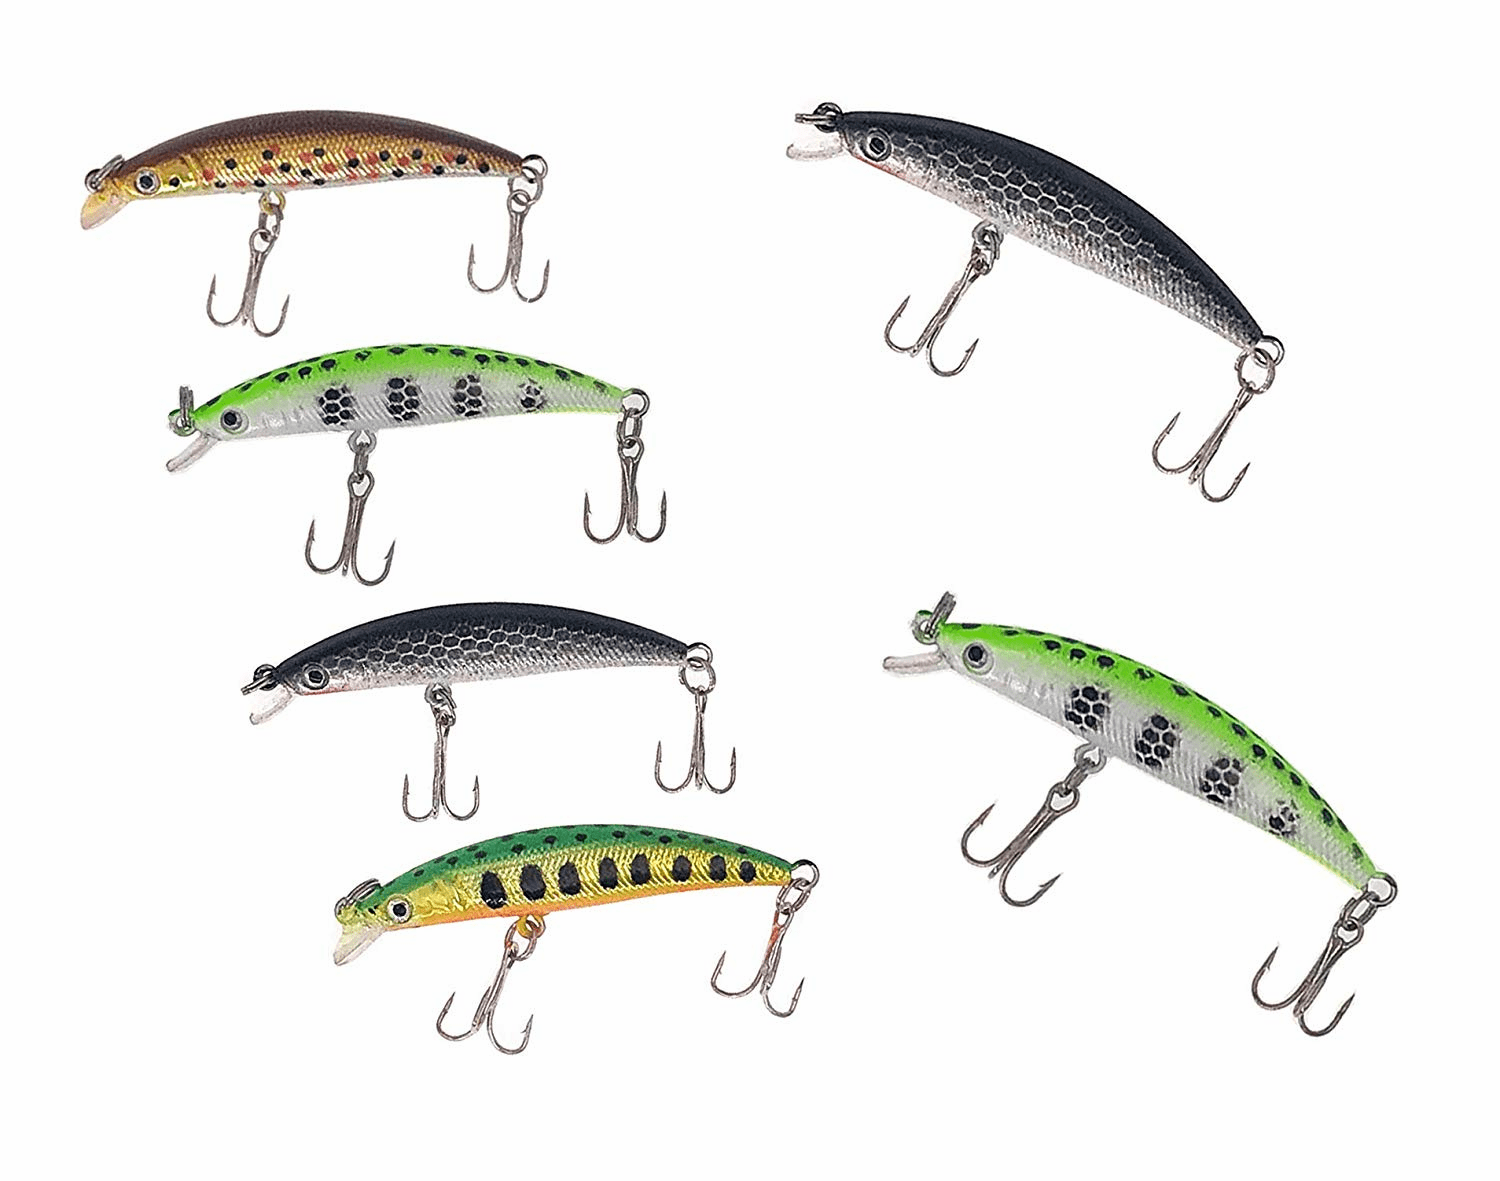 1/8oz Minnow Crankbaits for Bass Trout Fishing 4 Pieces Combo A